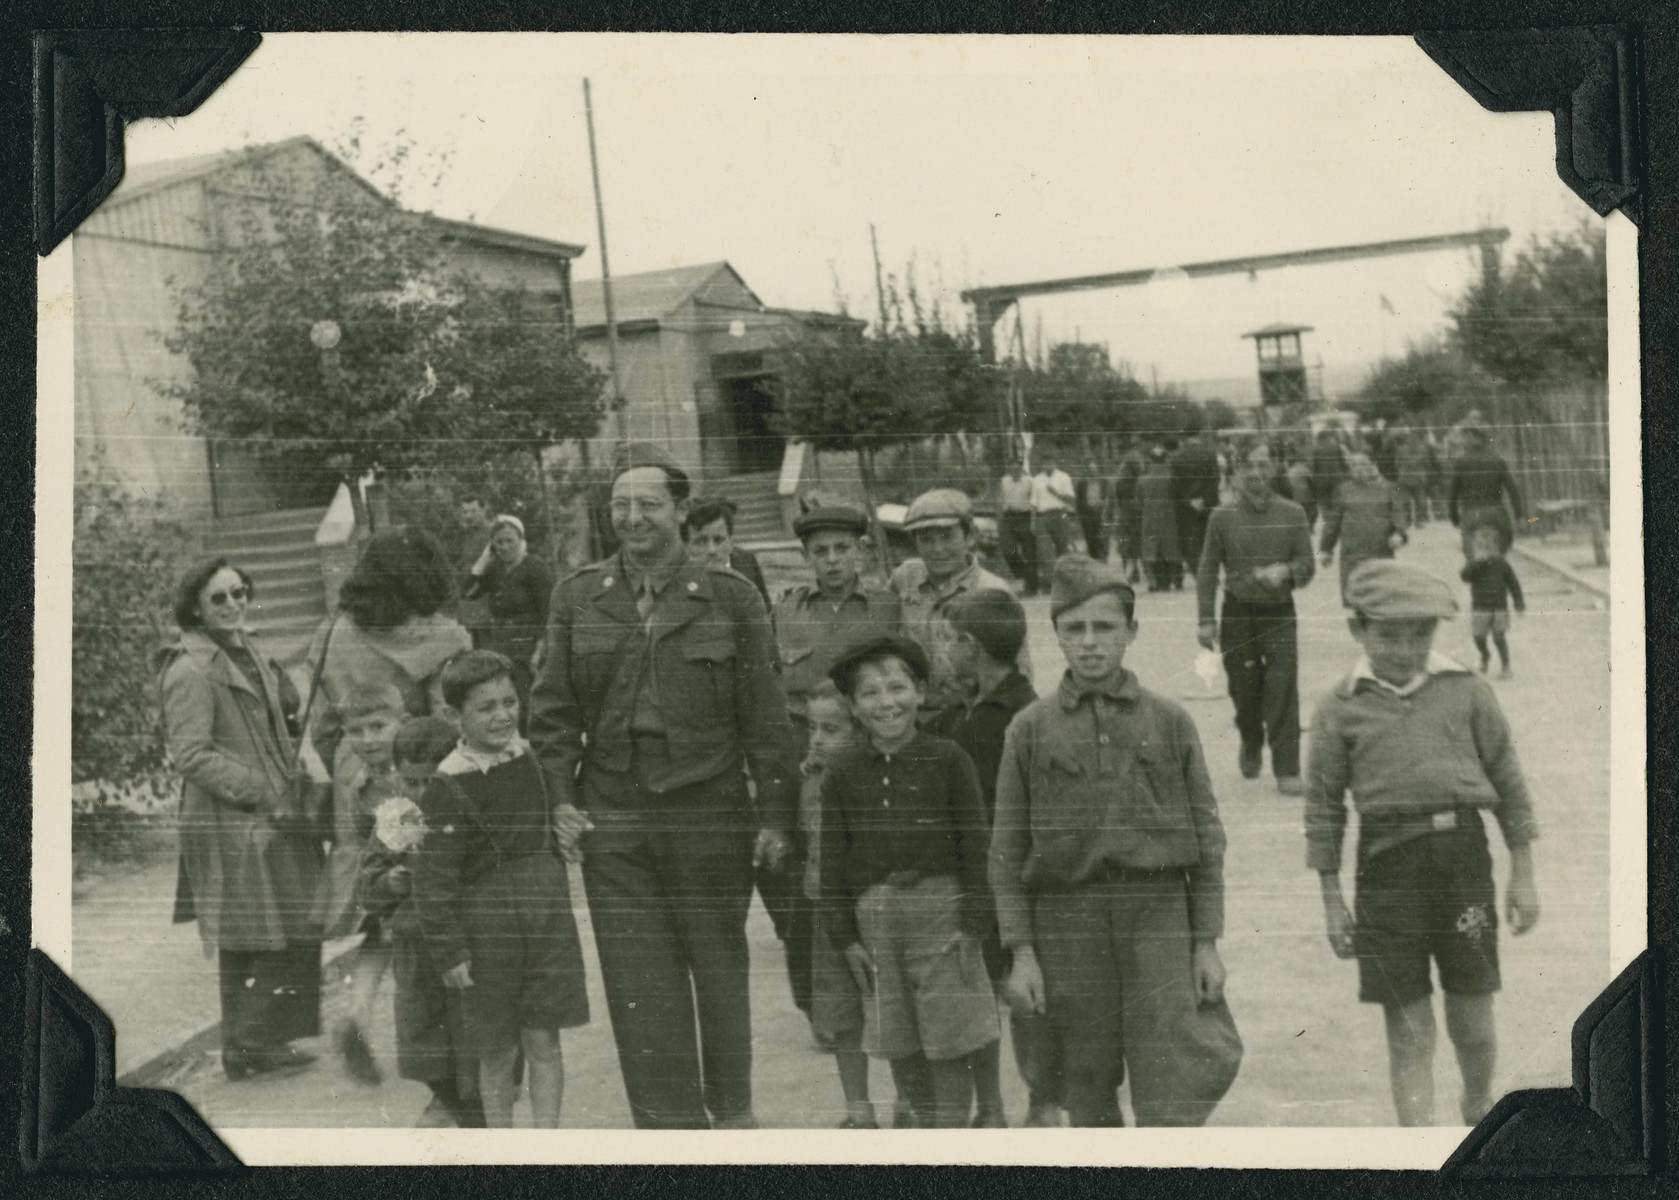 Children from the Ziegenhain displaced persons camp walk down a street together with David Bar-El, a member of the Frankfurt Jewish GI Council.  A watch tower can be seen in the background.